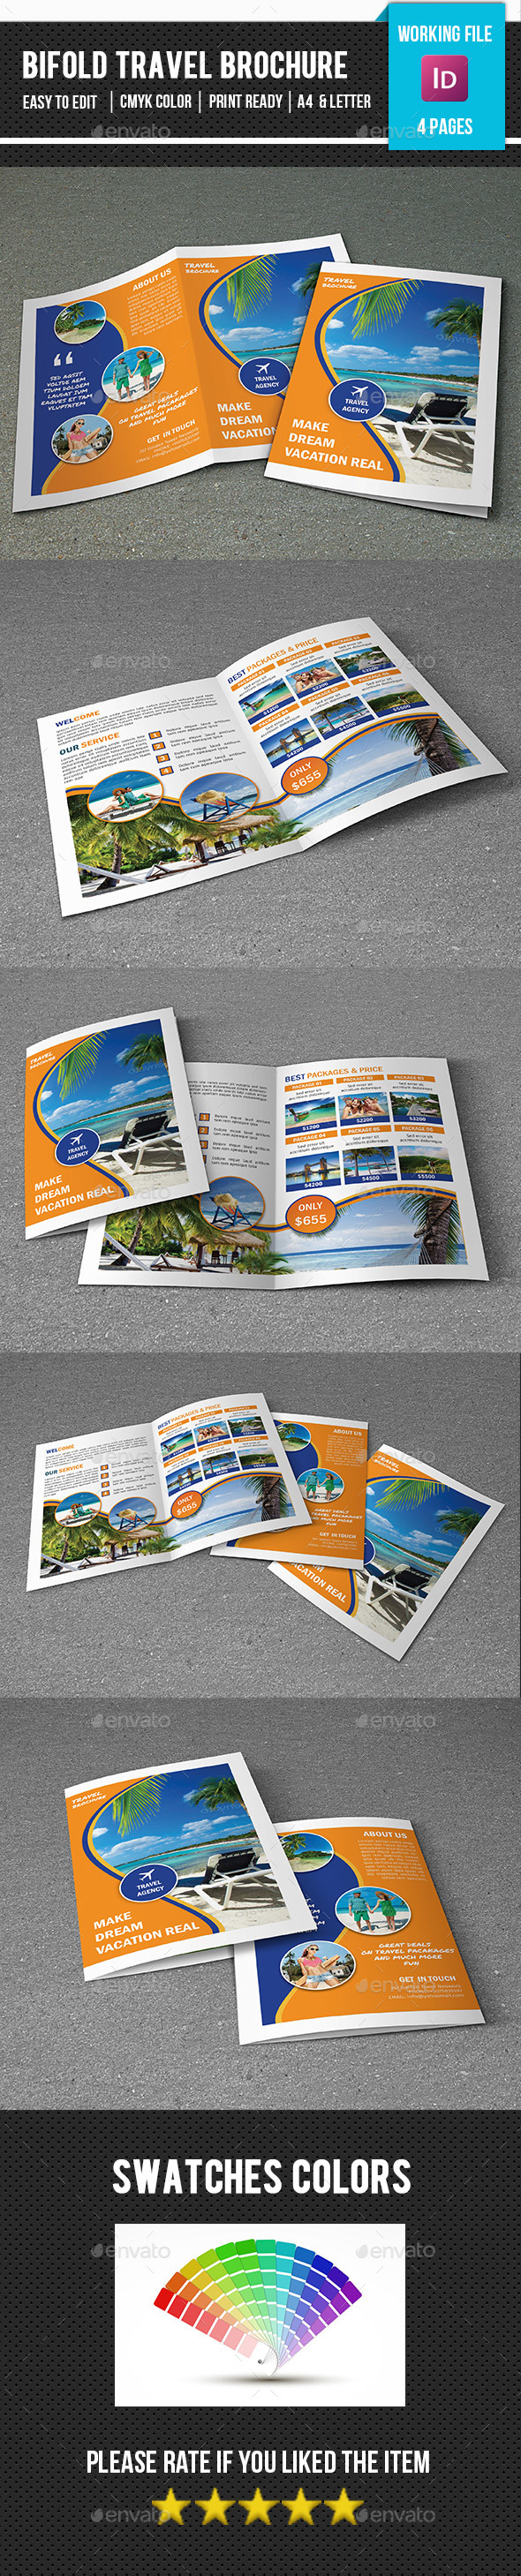 Travel Tour Brochure Template-V364 - Corporate Brochures